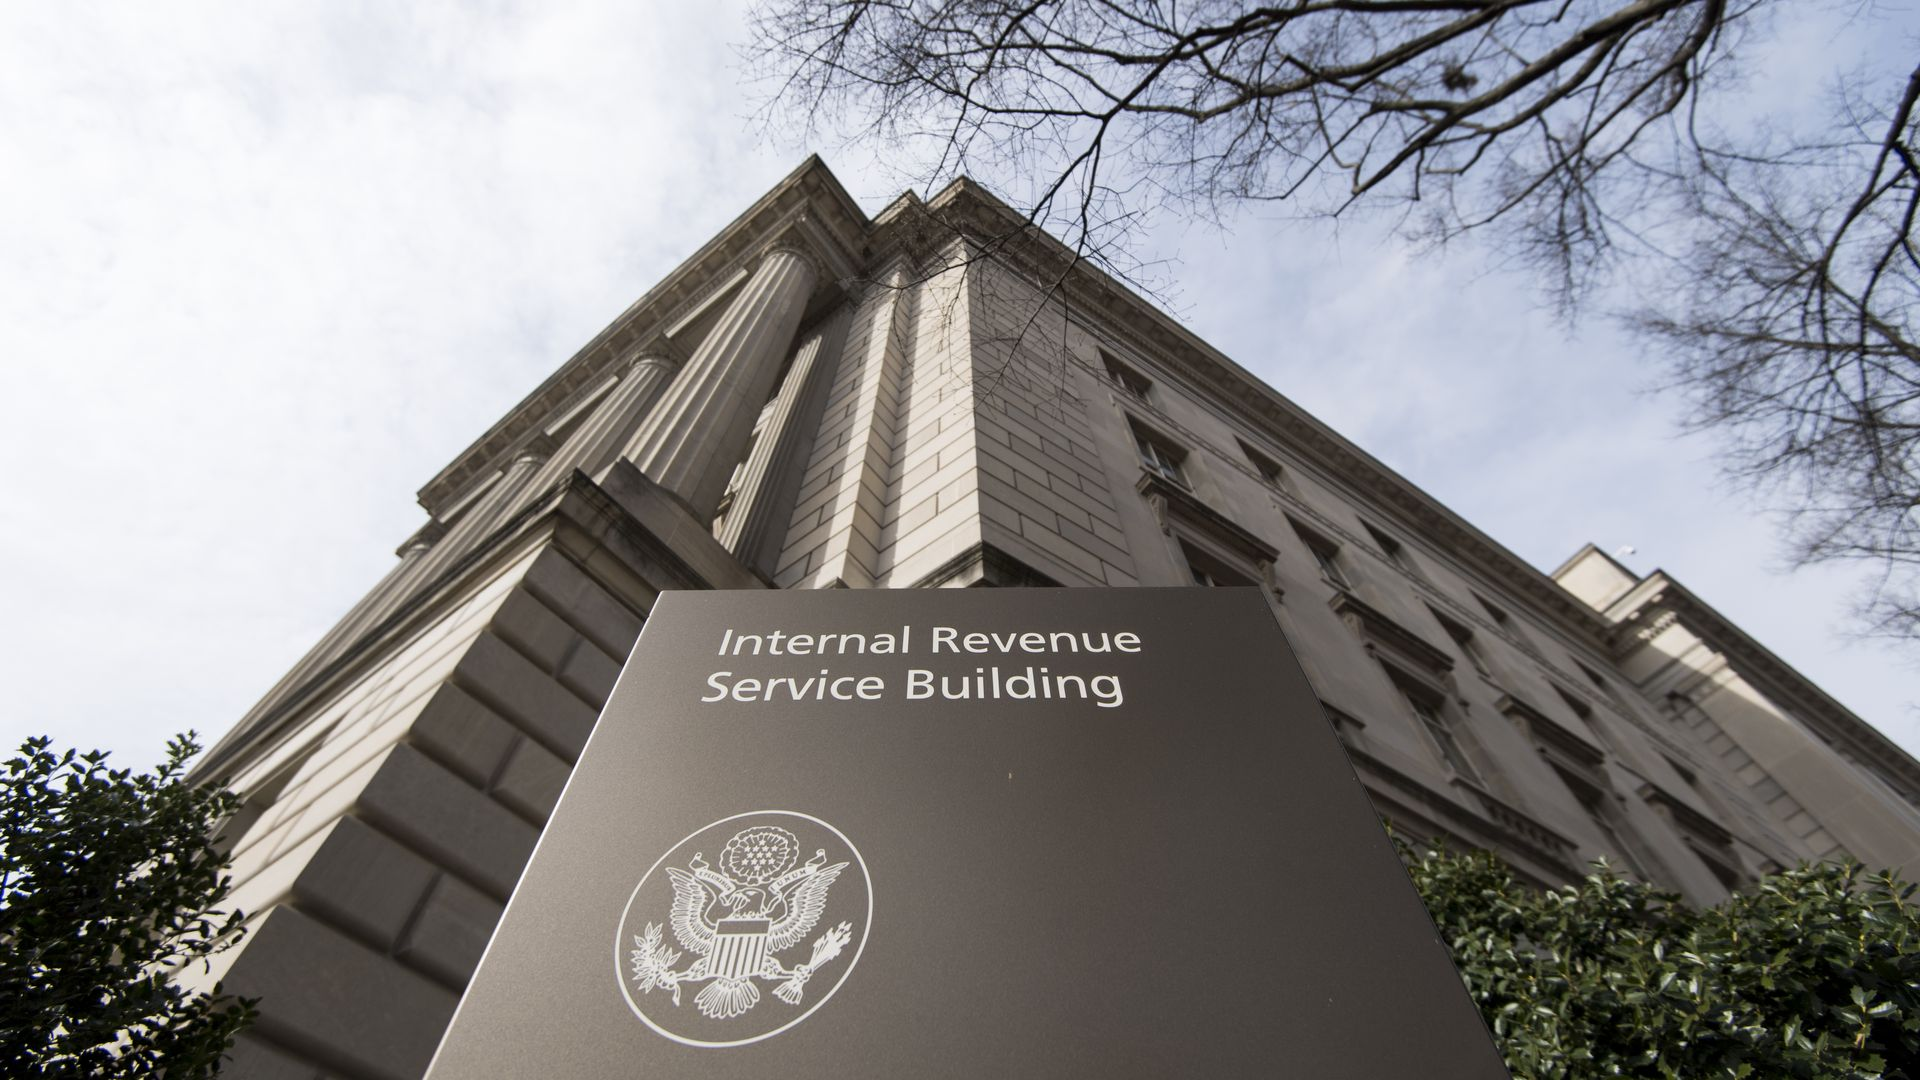 IRS building.